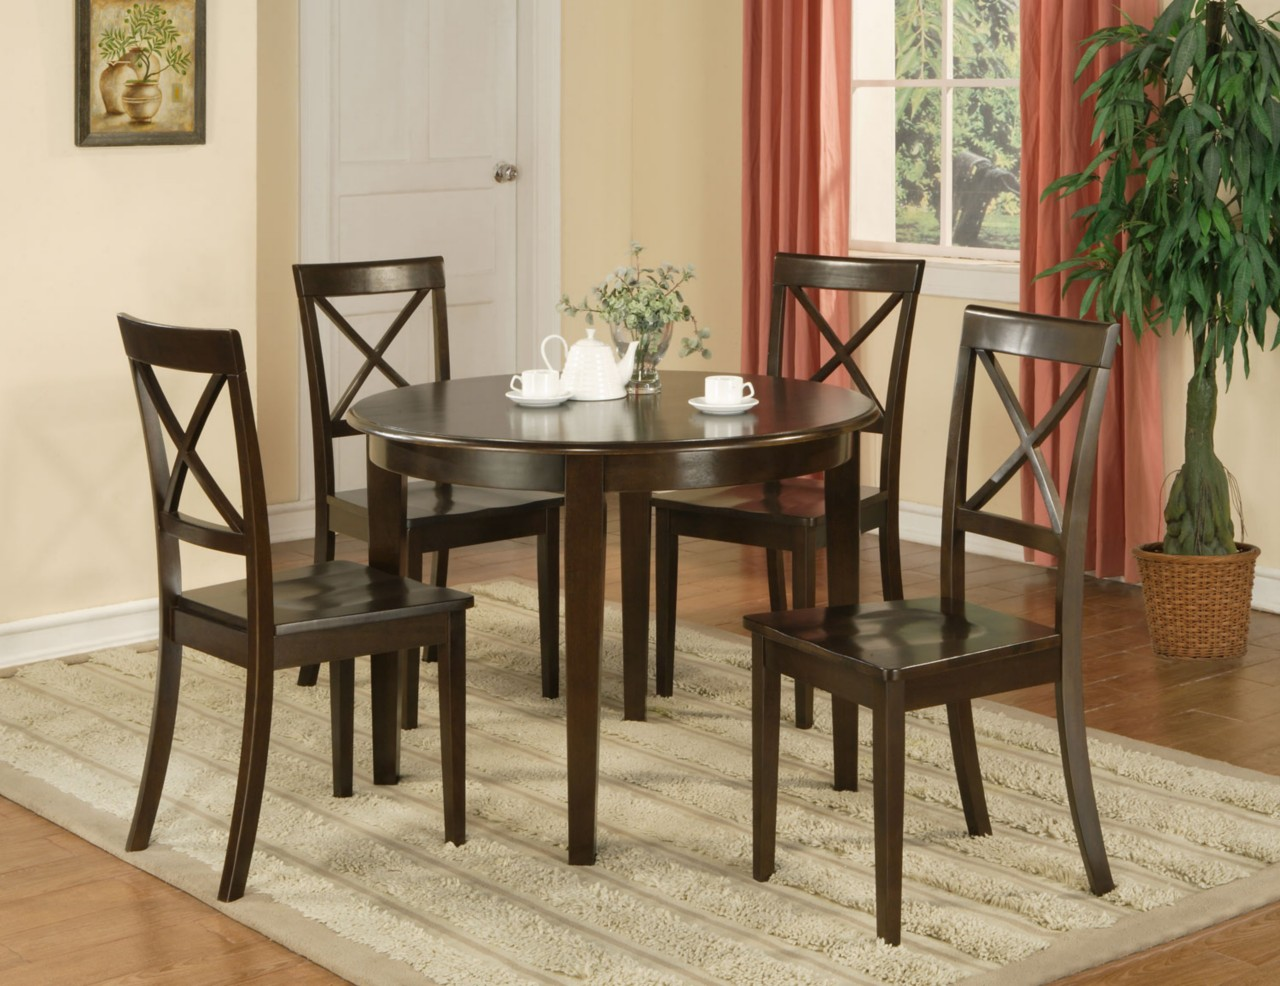 round dining tables for 4 chairs set eva furniture round kitchen table set Lenora Oval Dining Table